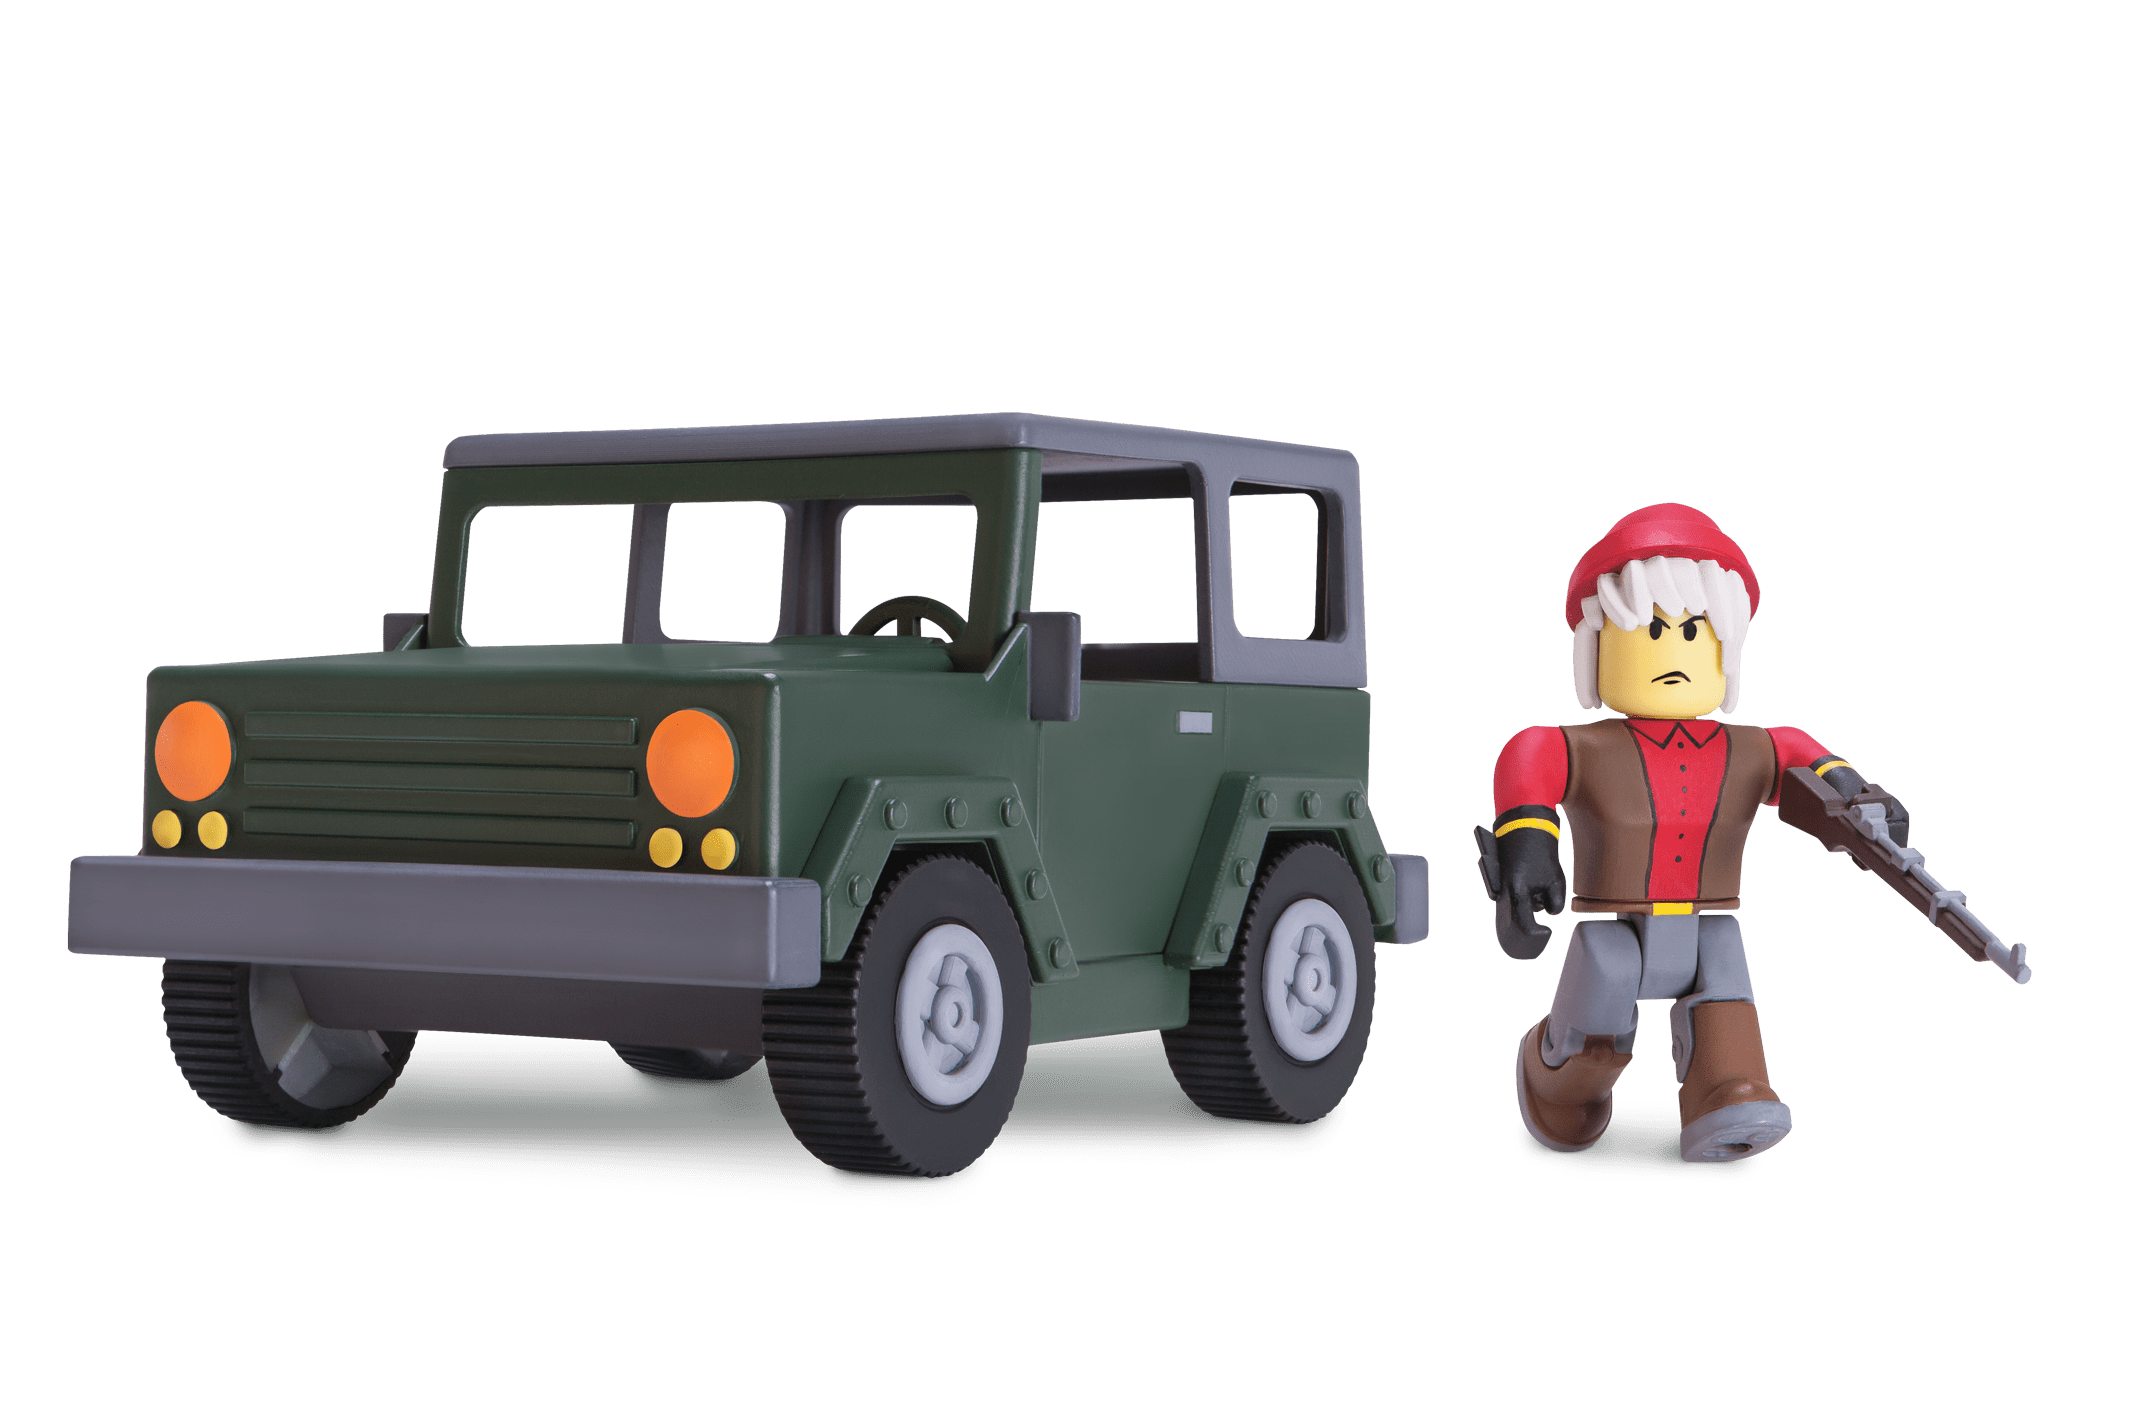 Roblox Action Collection Apocalypse Rising 4x4 Vehicle Includes Exclusive Virtual Item Walmart Com Walmart Com